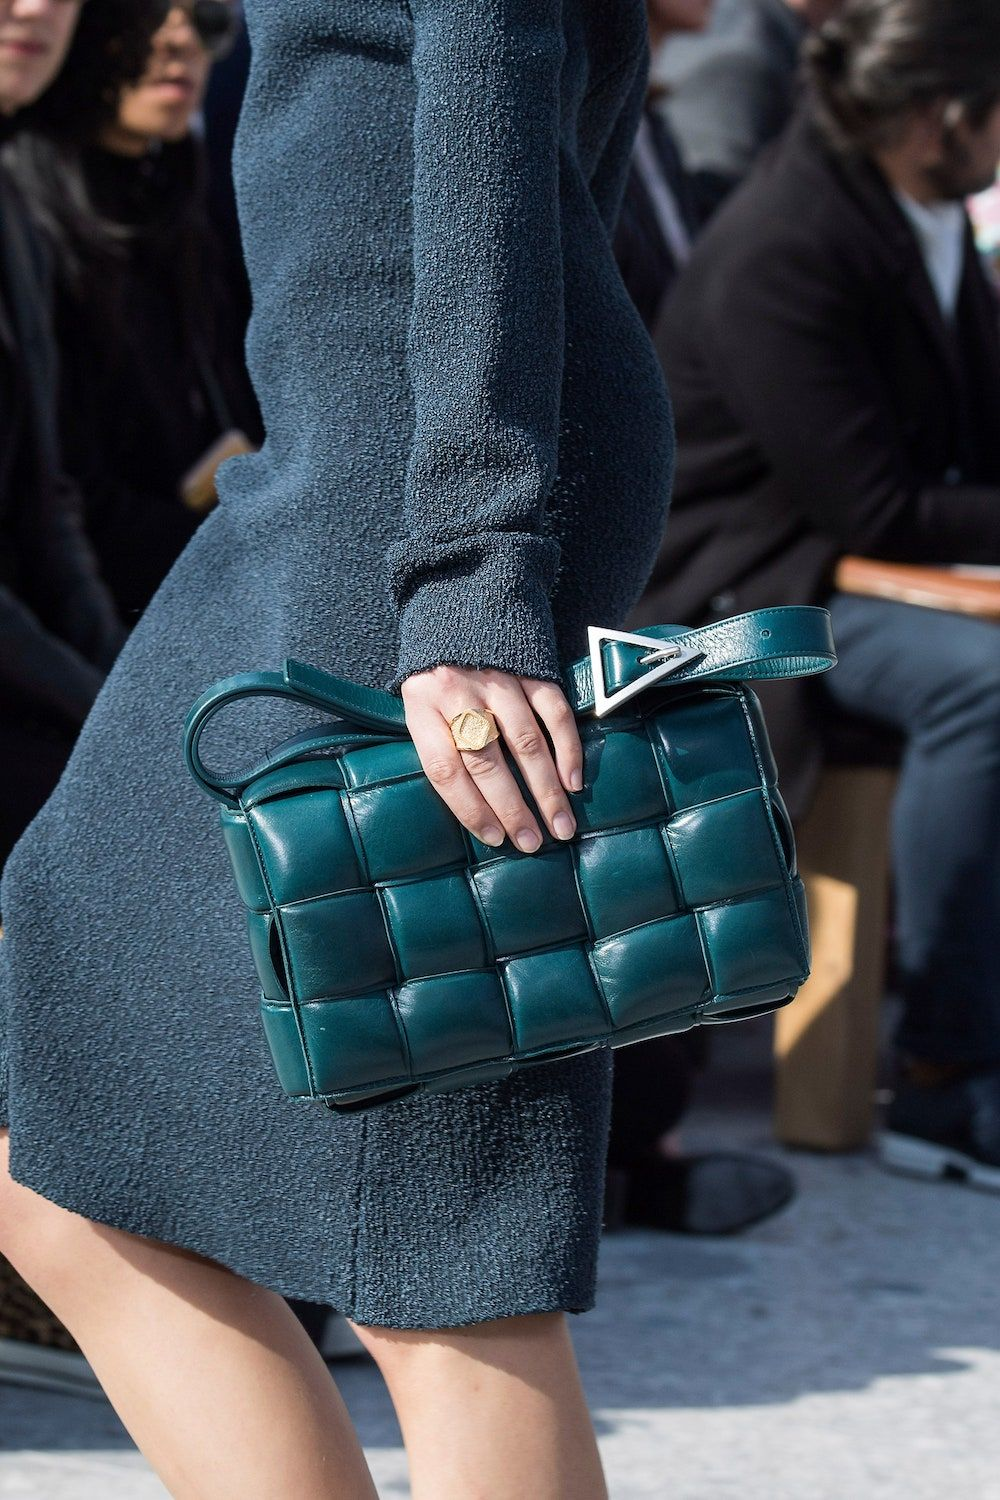 Iconic 'It Bags' to Know and Invest in: Bottega Veneta